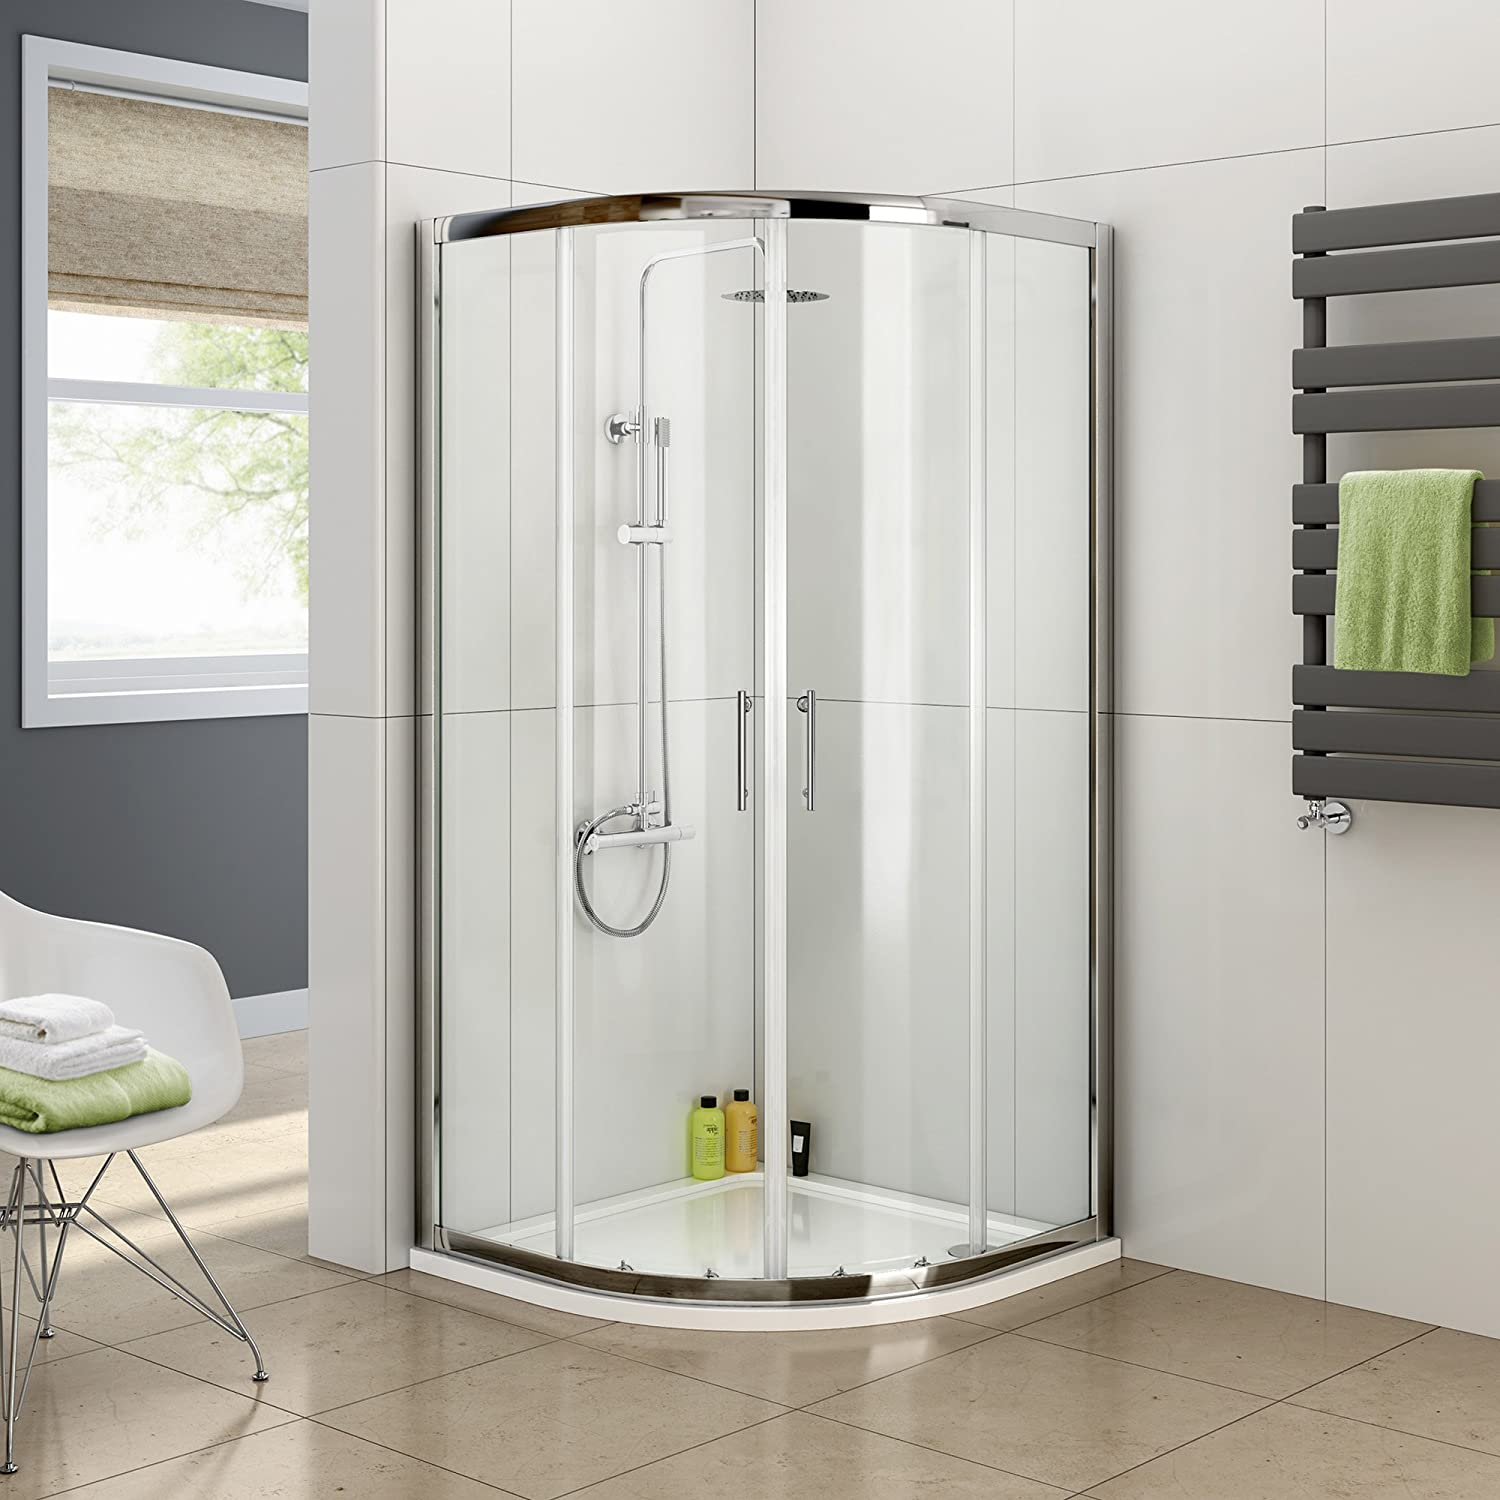 category shower maax en duel alcove finishes utile enclosure products doors door